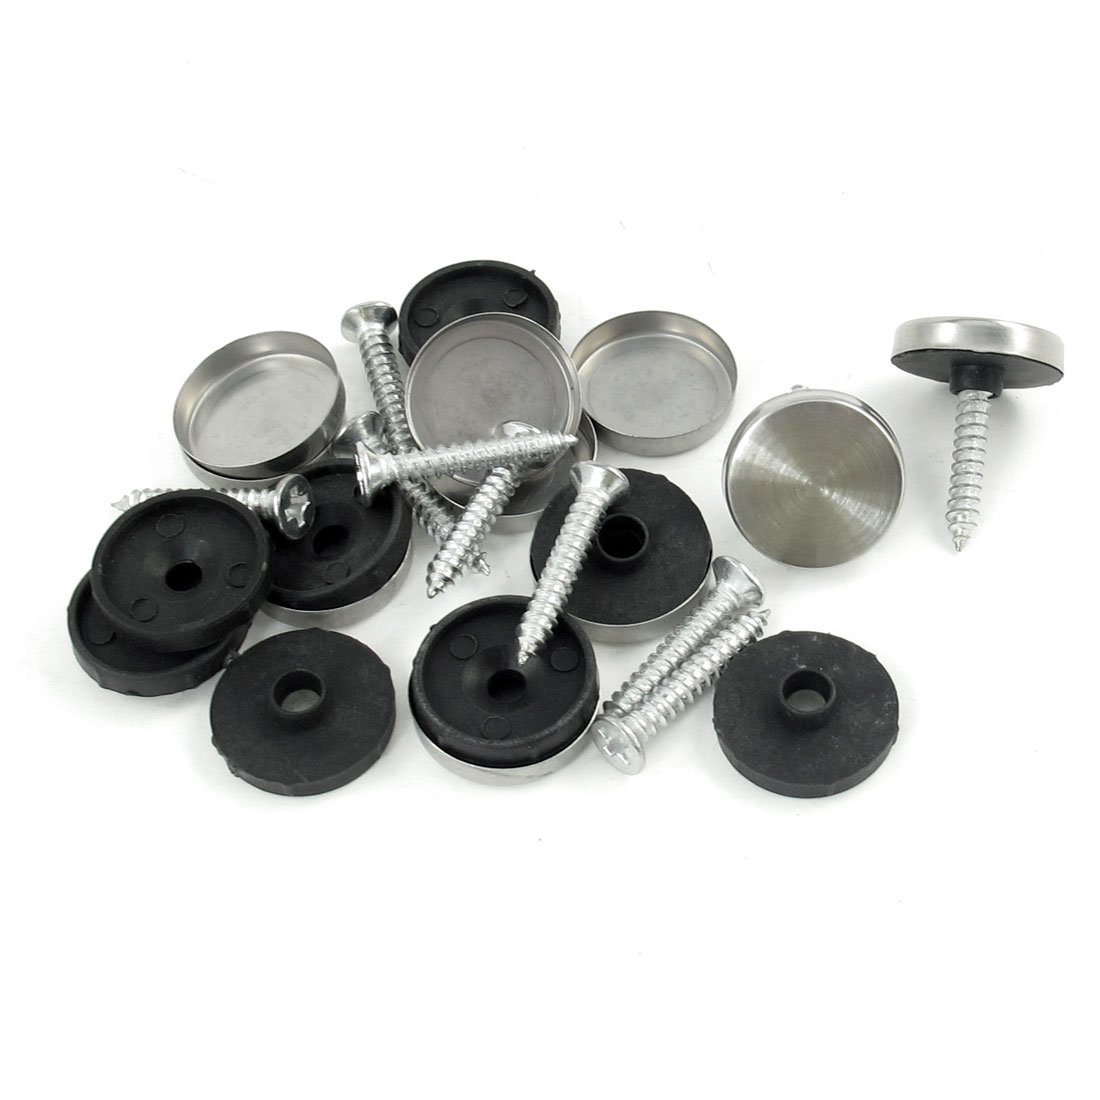 Tea Table Mirror 18mm Dia Cap Silver Tone Black Screw Nails 10 Pcs